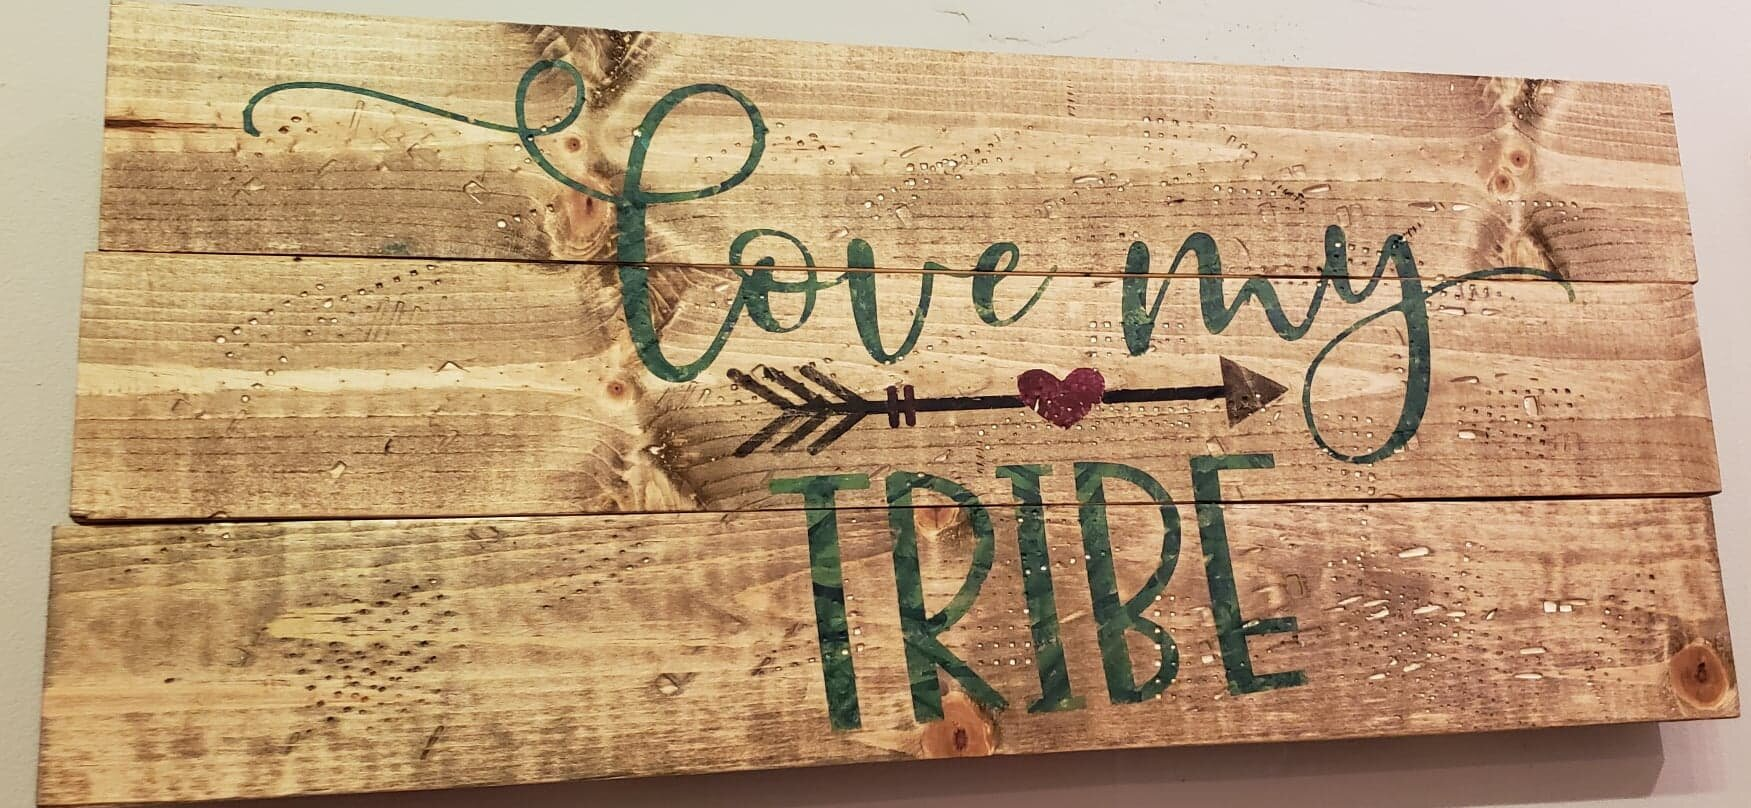 lovemytribewood.jpg